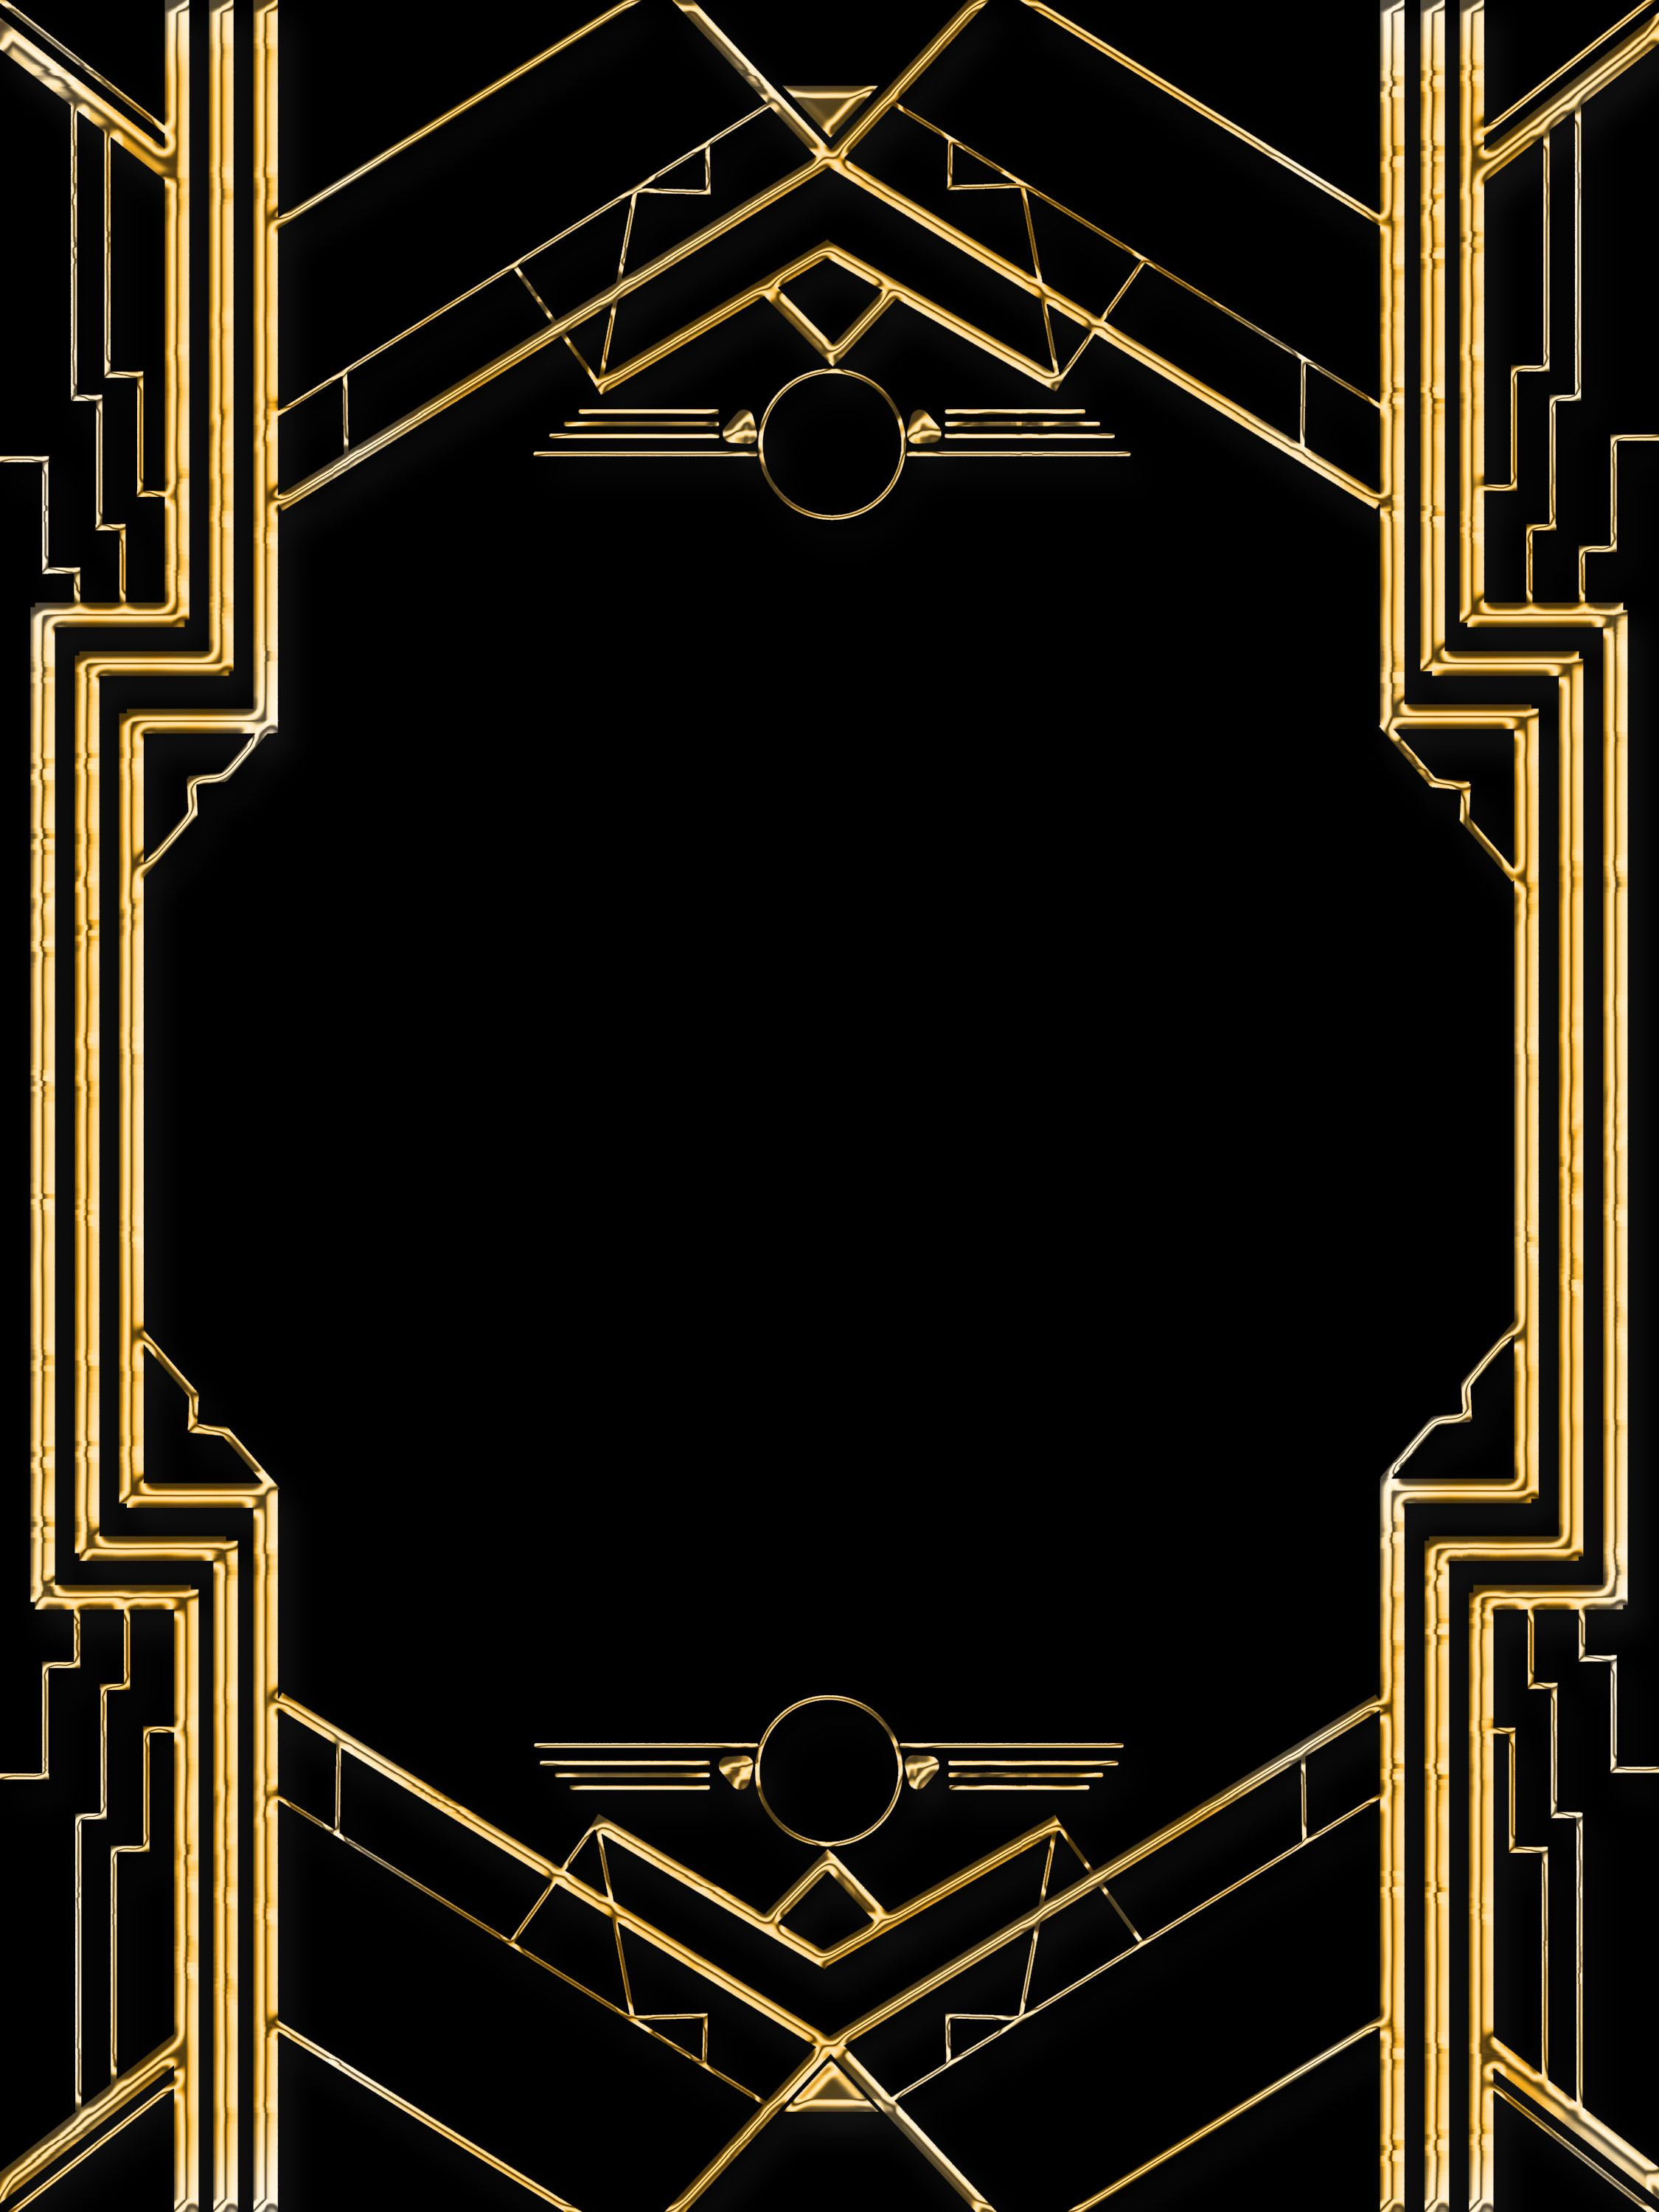 invite template gold plated 2 250 3 000 pixels. Black Bedroom Furniture Sets. Home Design Ideas